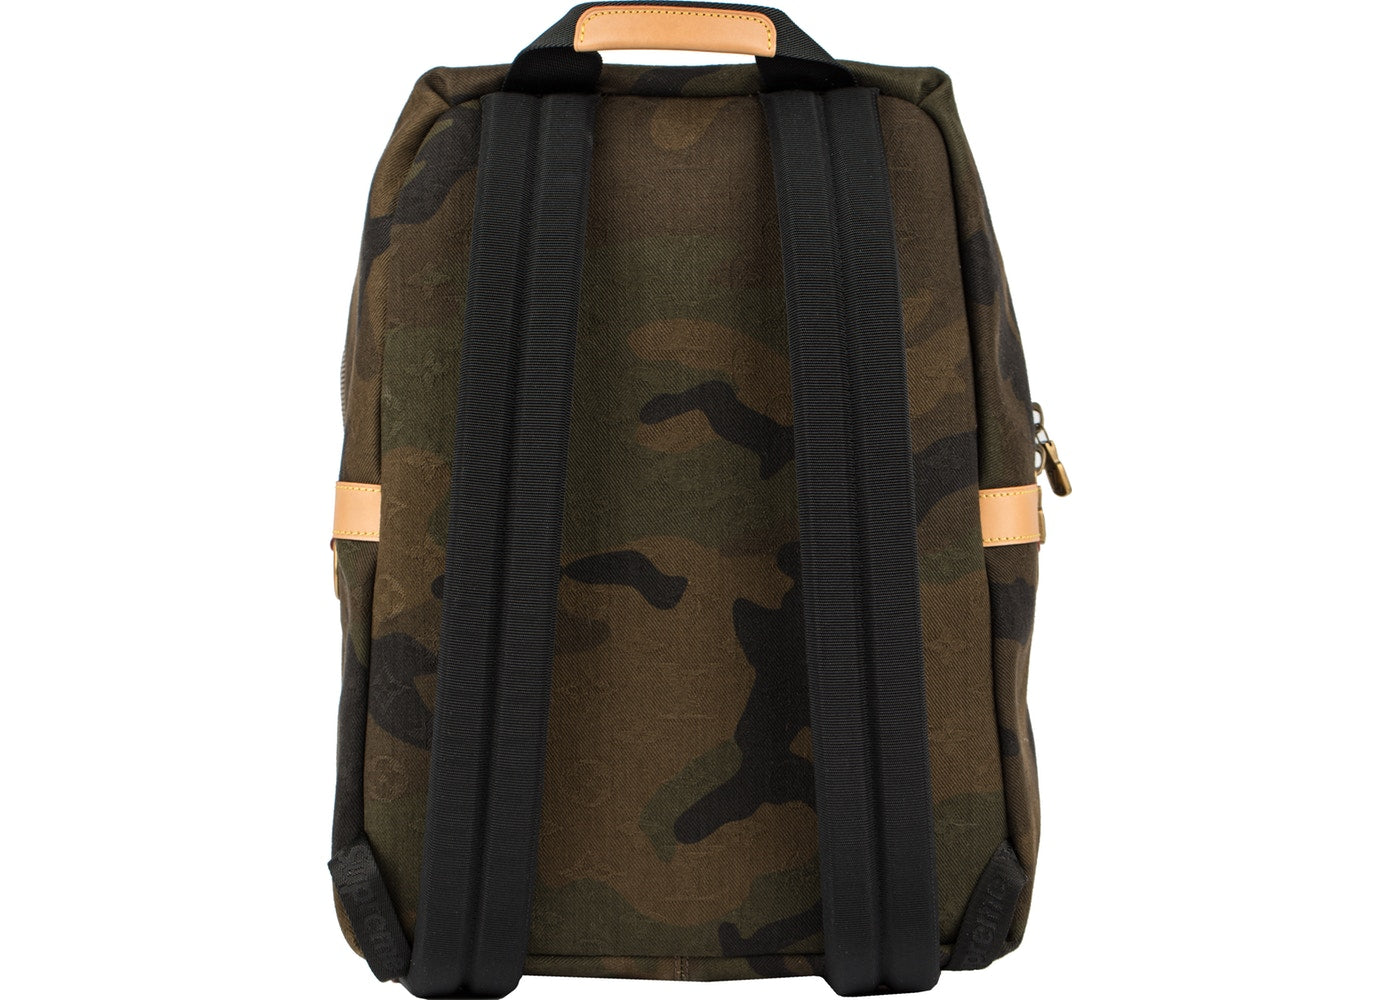 ... Load image into Gallery viewer, Louis Vuitton x Supreme Apollo Backpack  Monogram Camo ... 74ebe875d4